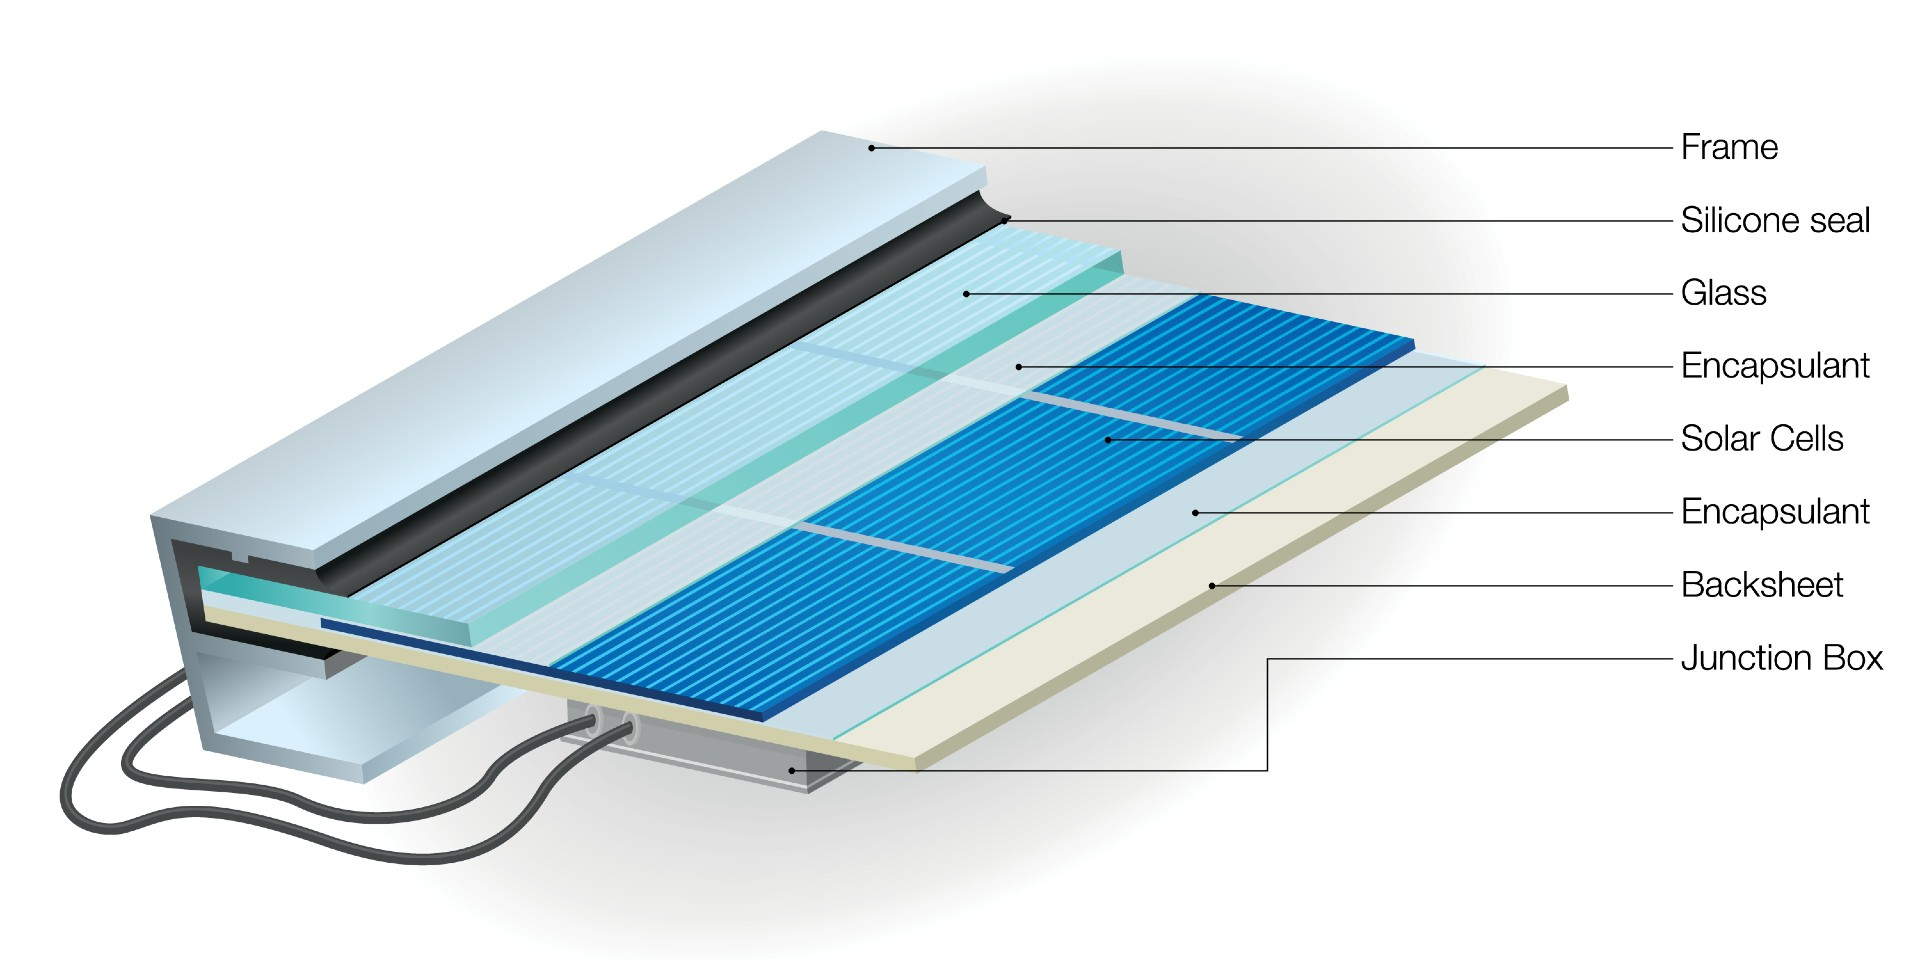 solar panel layers and components